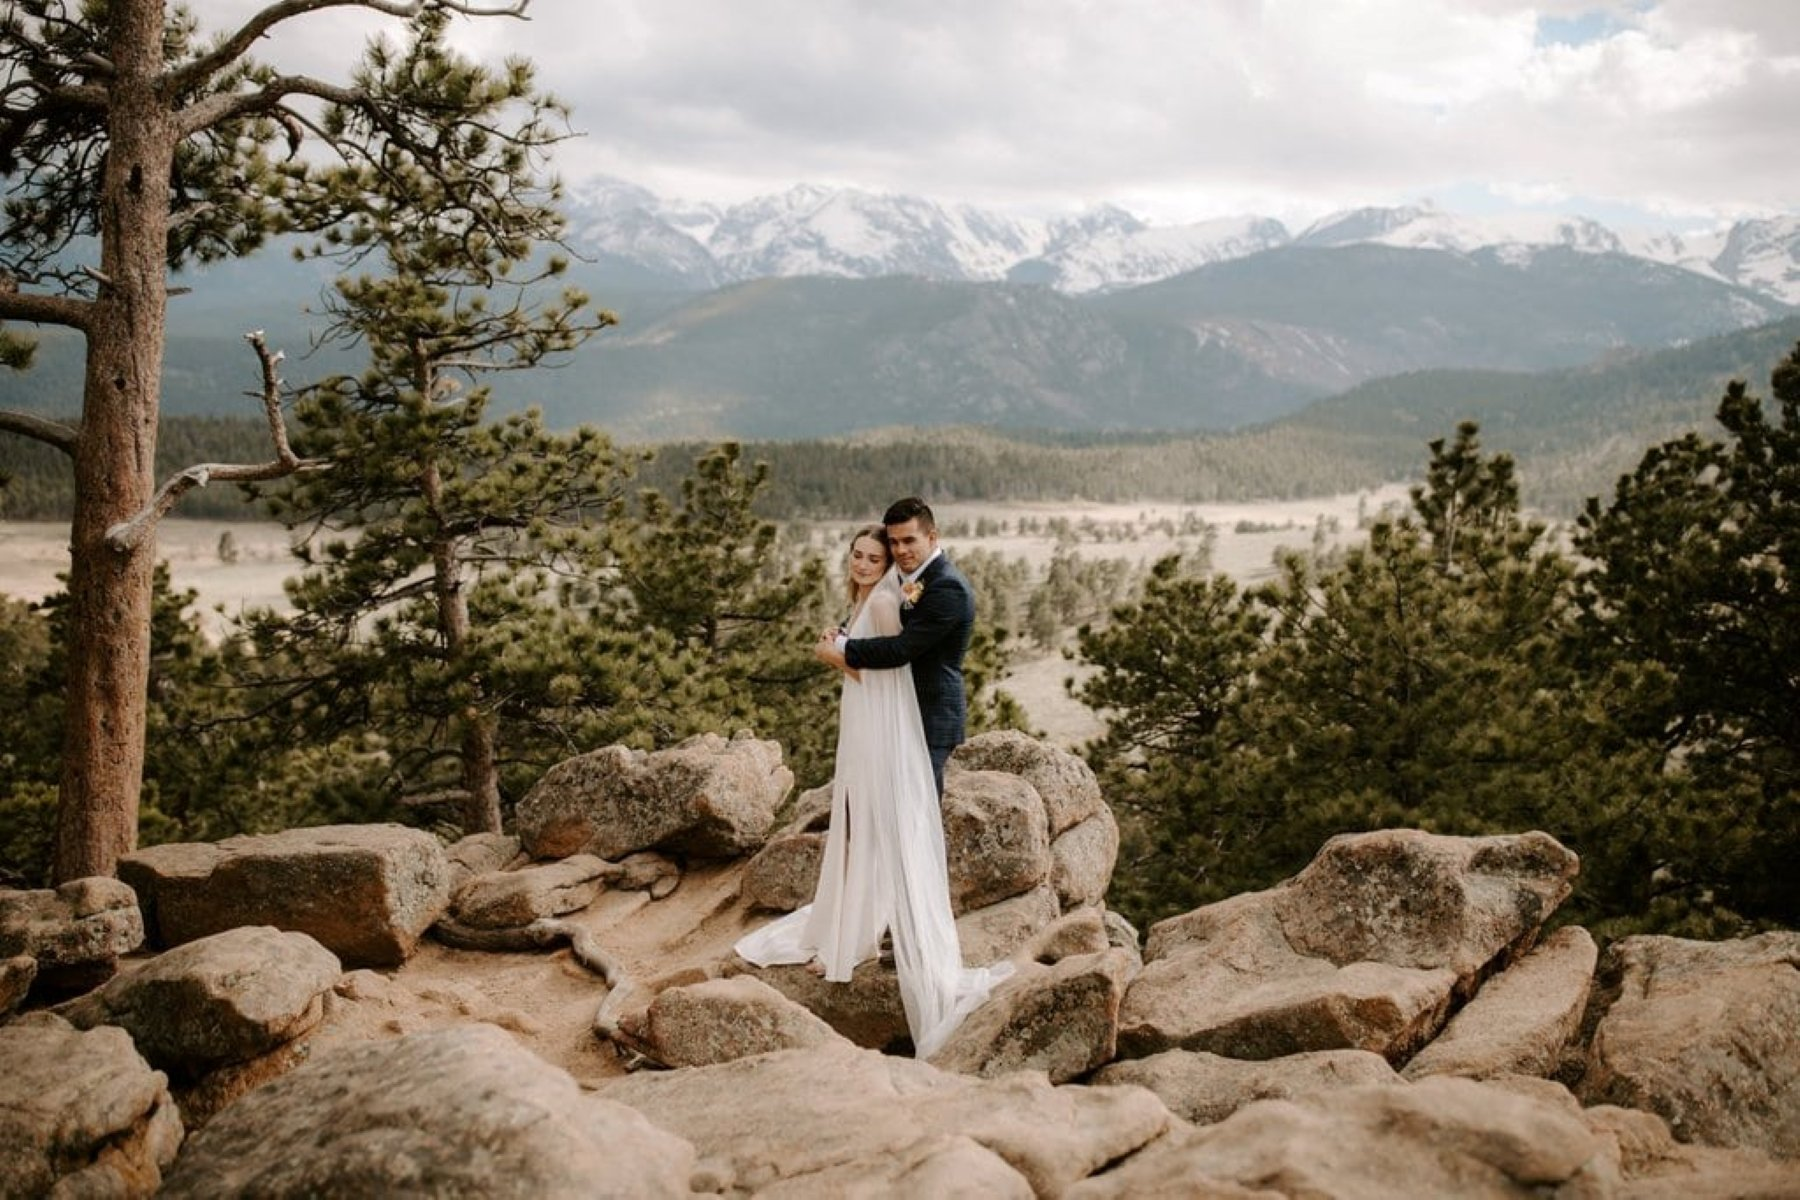 Intimate wedding at Sleepy Hollow park, Rocky Mountain national park in Colorado